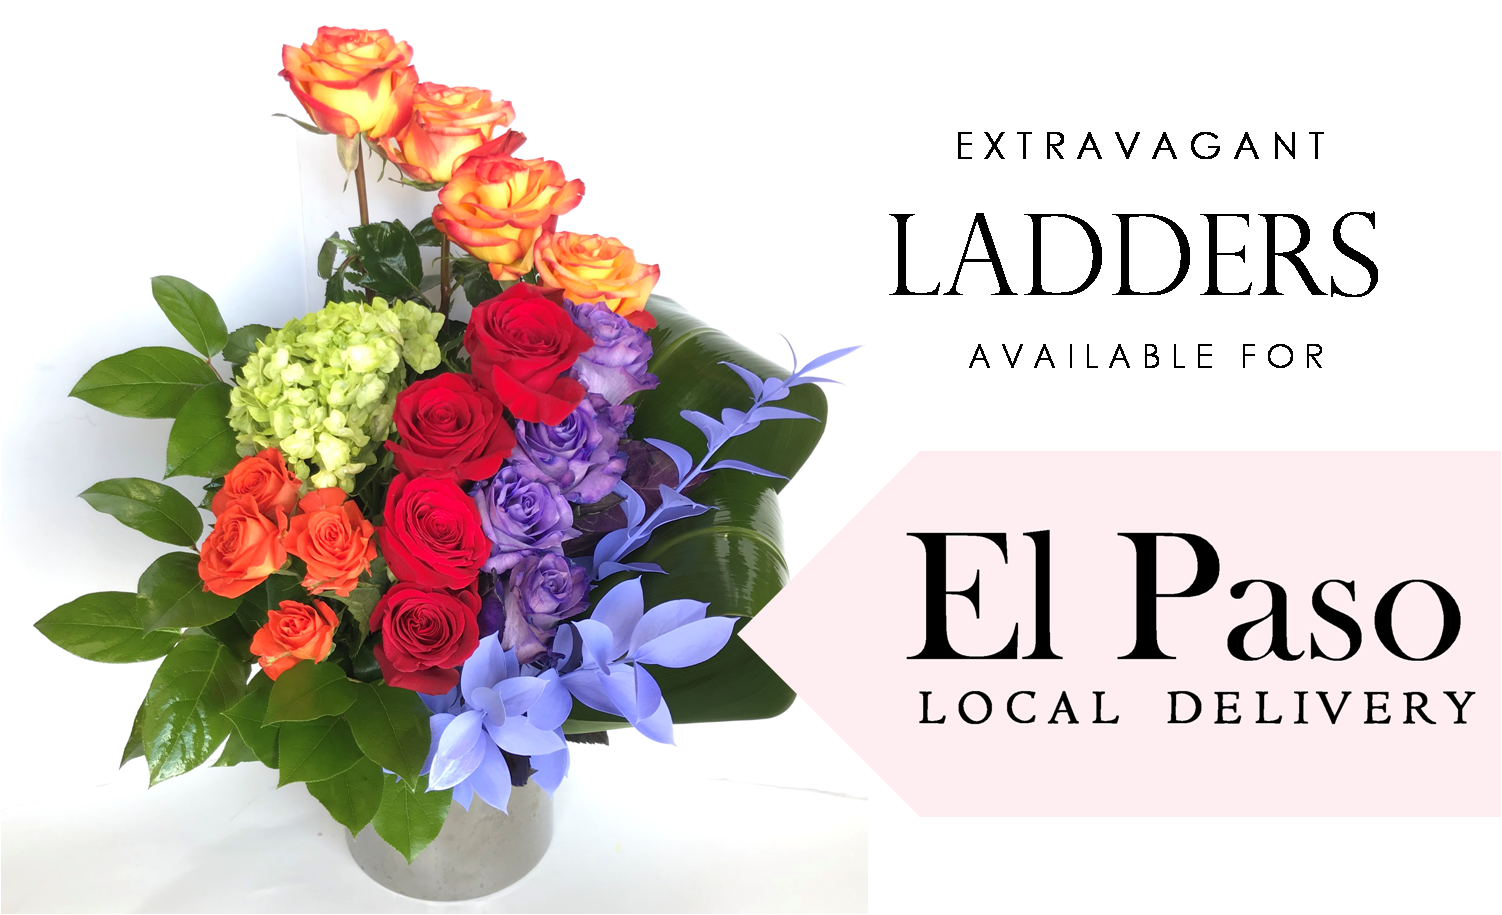 the-angies-floral-designs-el-paso-flowershop-el-paso-florist-79912-bloom-box-divine-chocolate-moet-chandon-ladders-macaroons-a-flower-arrangements.png